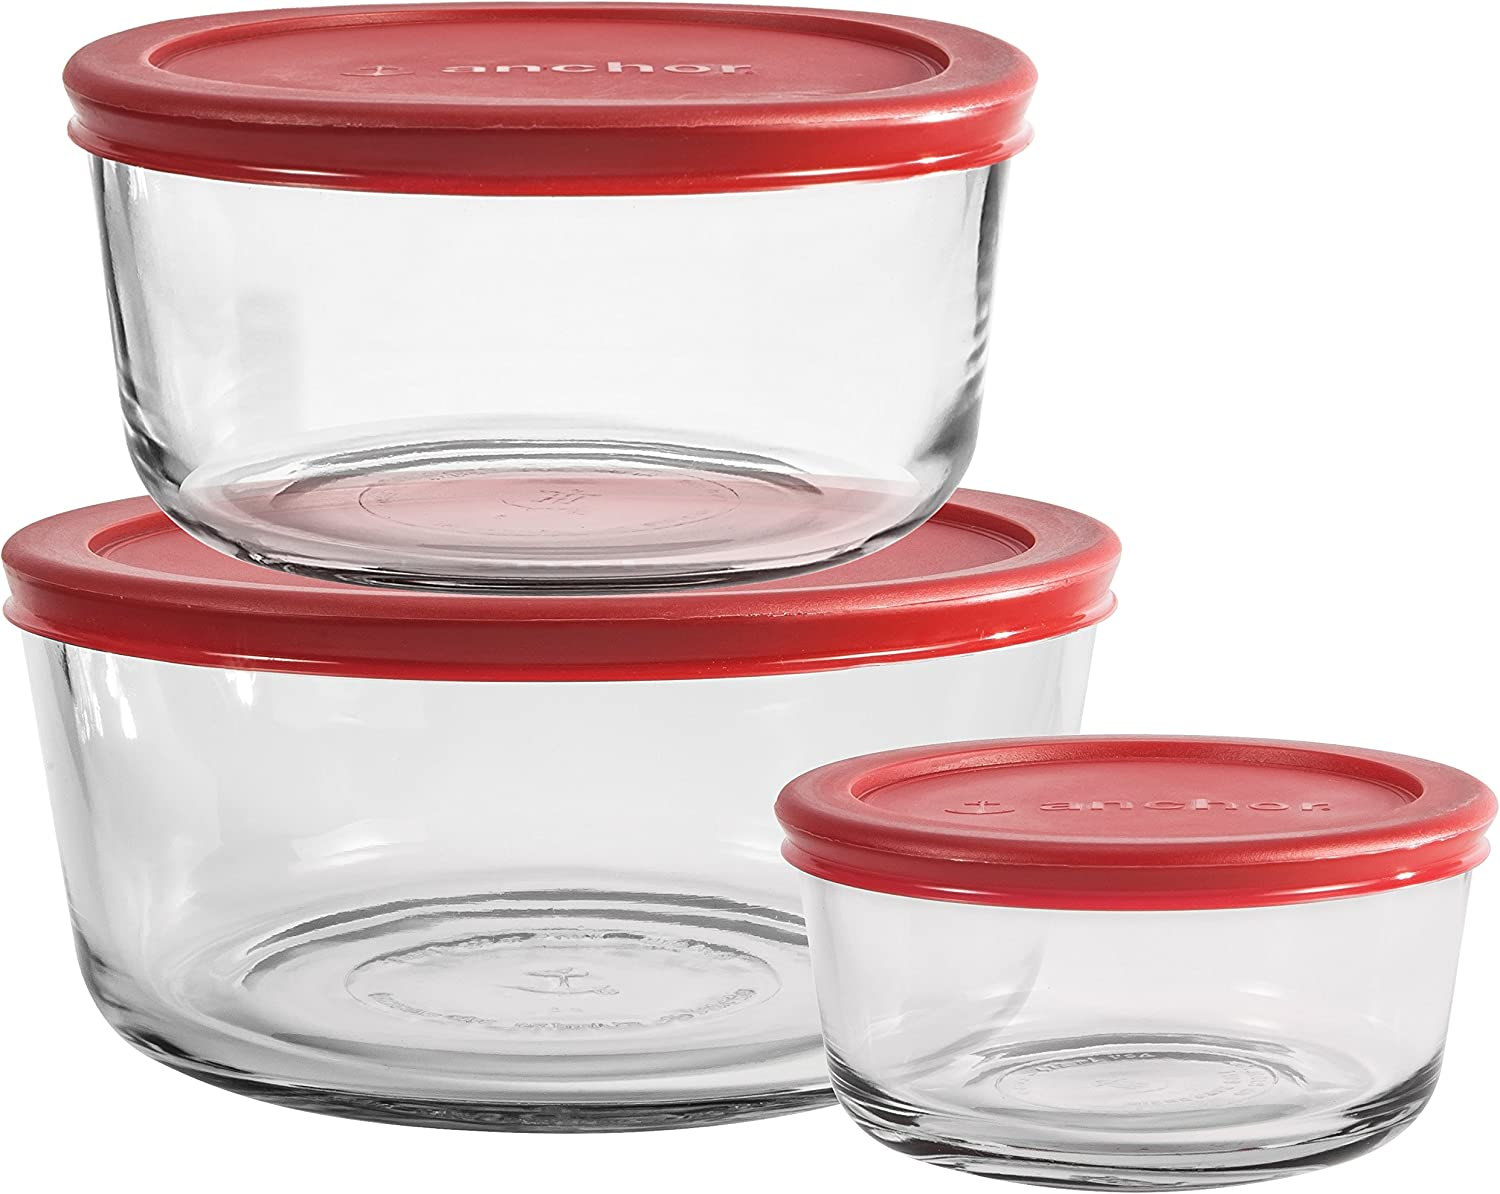 Anchor Hocking Glass Storage 3-Container Set with Lids